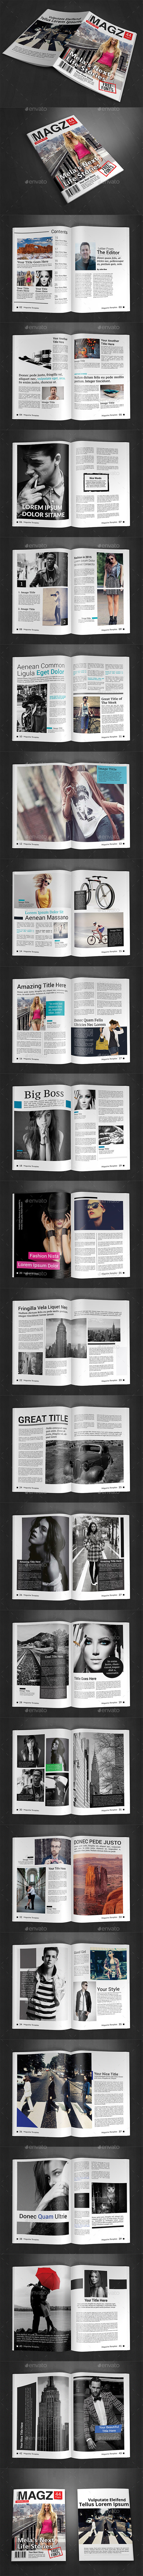 GraphicRiver A4 Magazine Template Vol.8 9252477